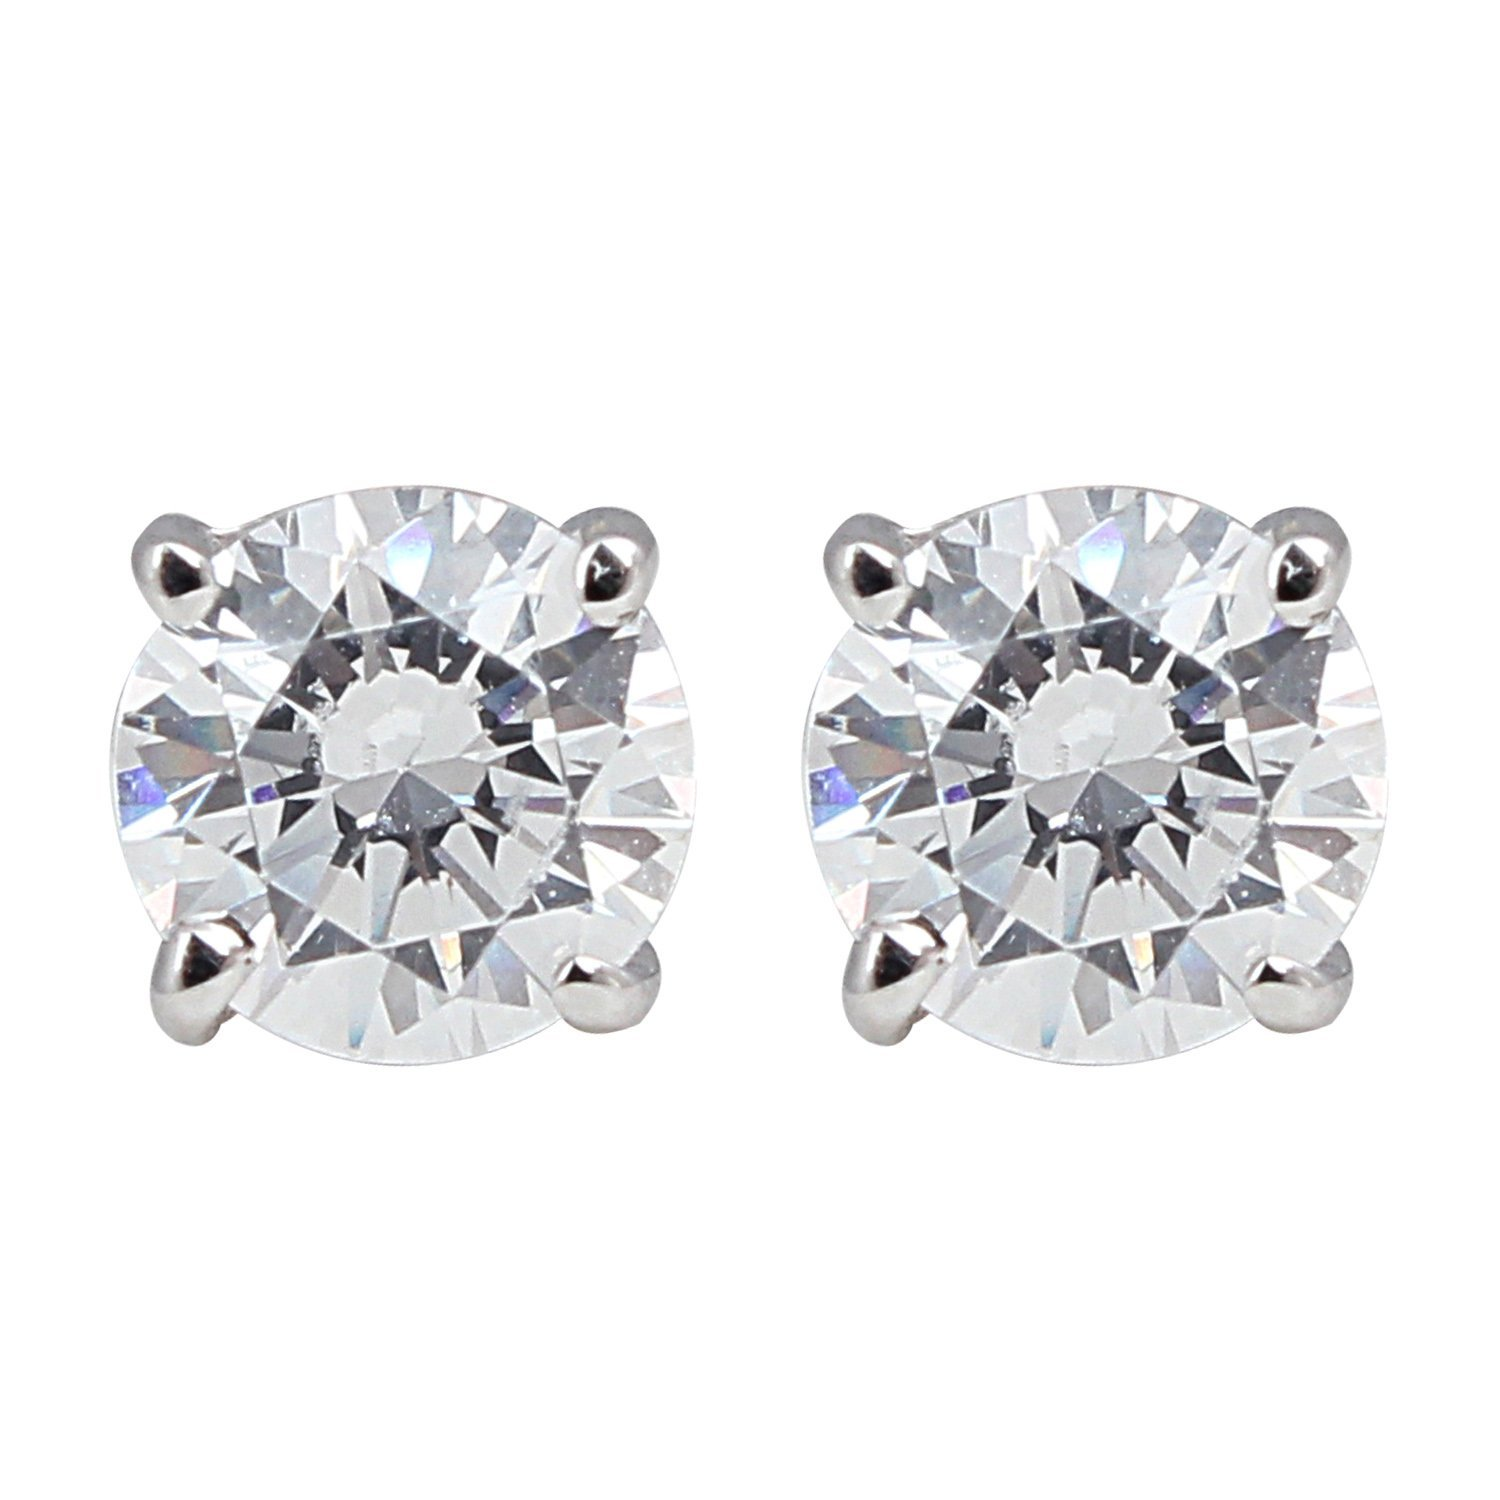 Amazon 14K White Gold Round Diamond Stud Earrings 1 cttw